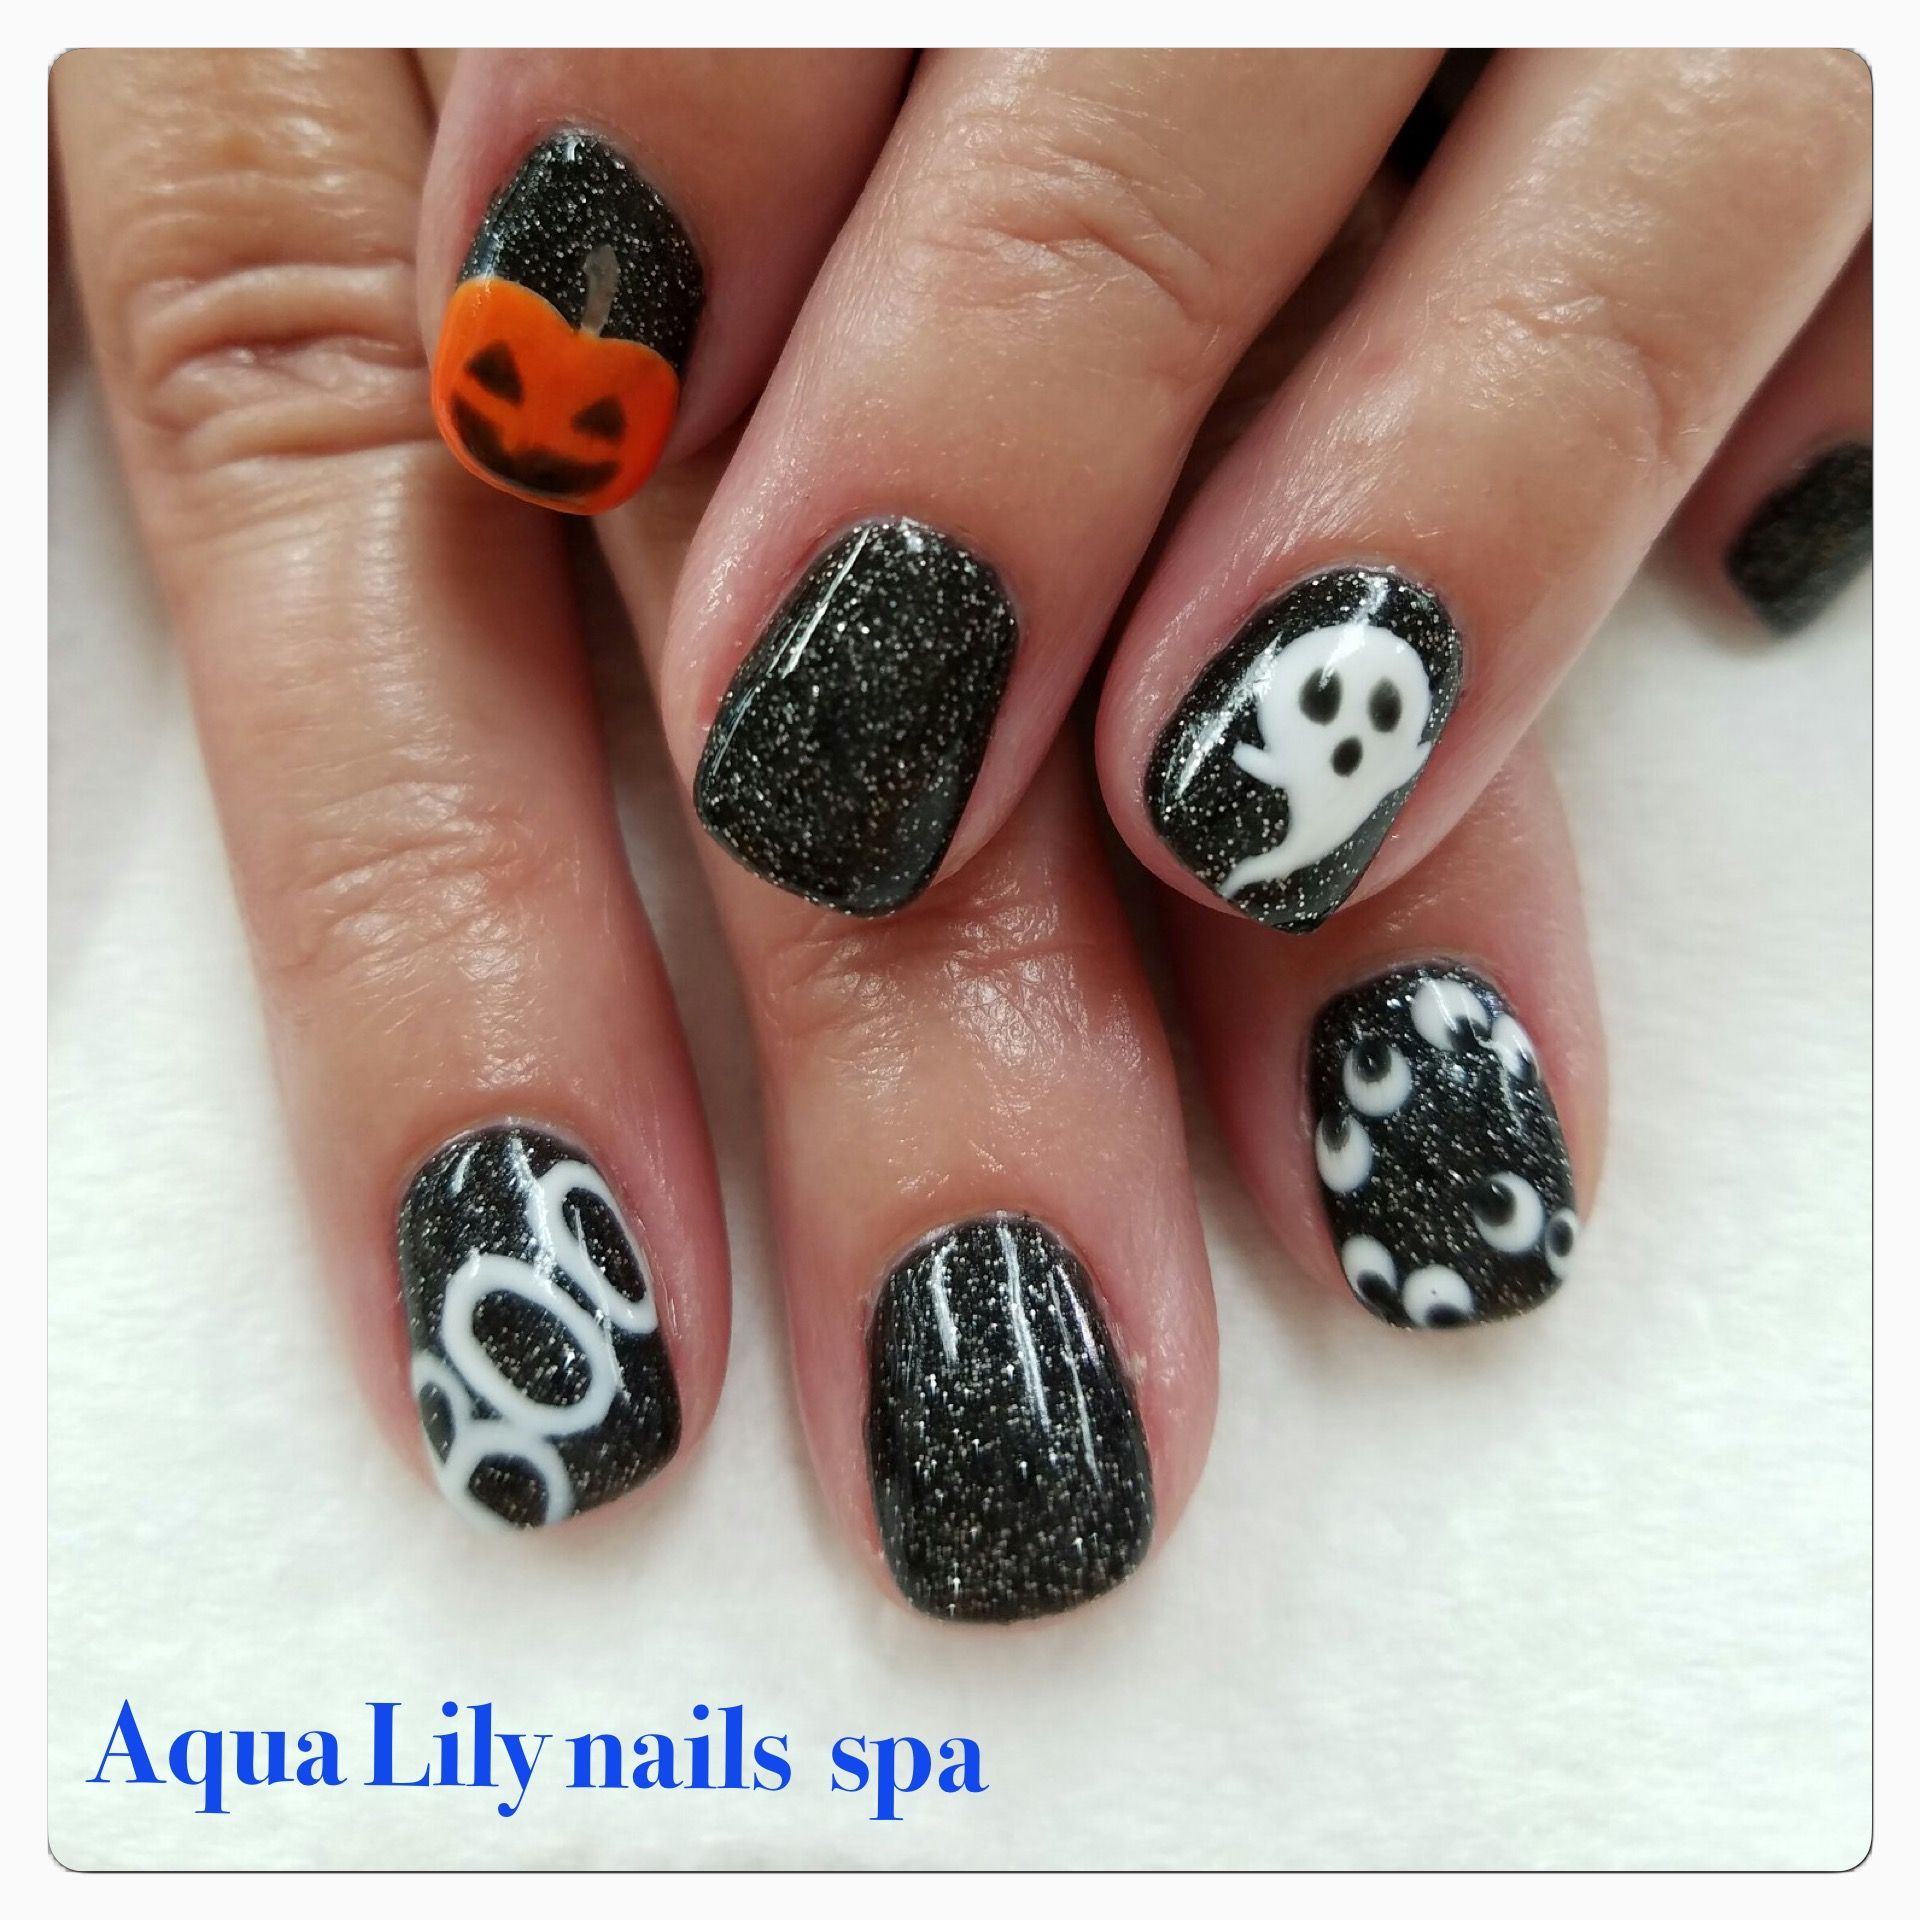 Halloween Nails Designs With Jack O Lantern Ghost Boo Black Gel Nails And Eyes Black Halloween Nails Halloween Nail Designs Lily Nails